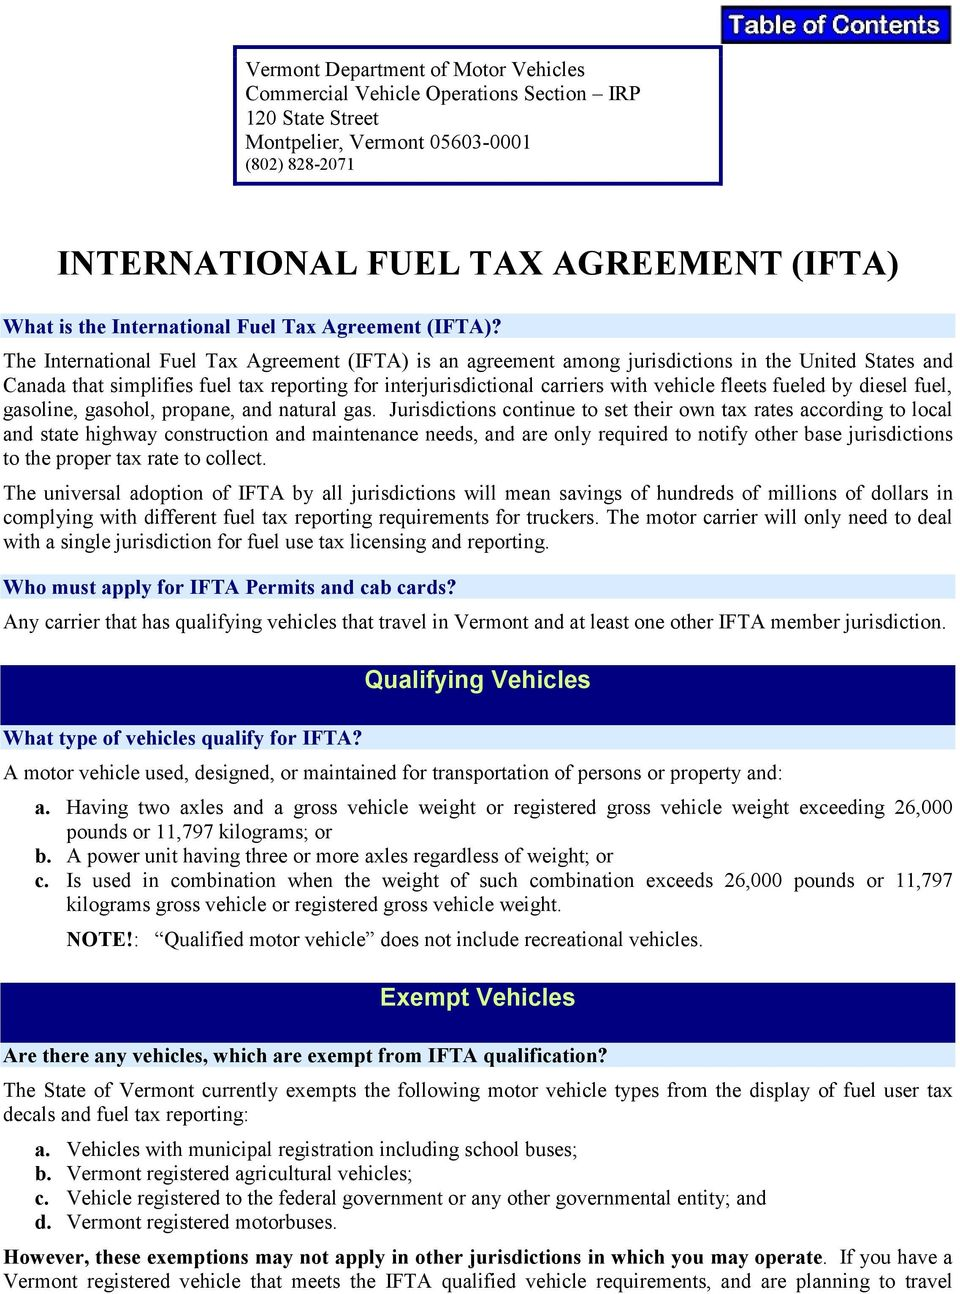 The International Fuel Tax Agreement (IFTA) is an agreement among jurisdictions in the United States and Canada that simplifies fuel tax reporting for interjurisdictional carriers with vehicle fleets